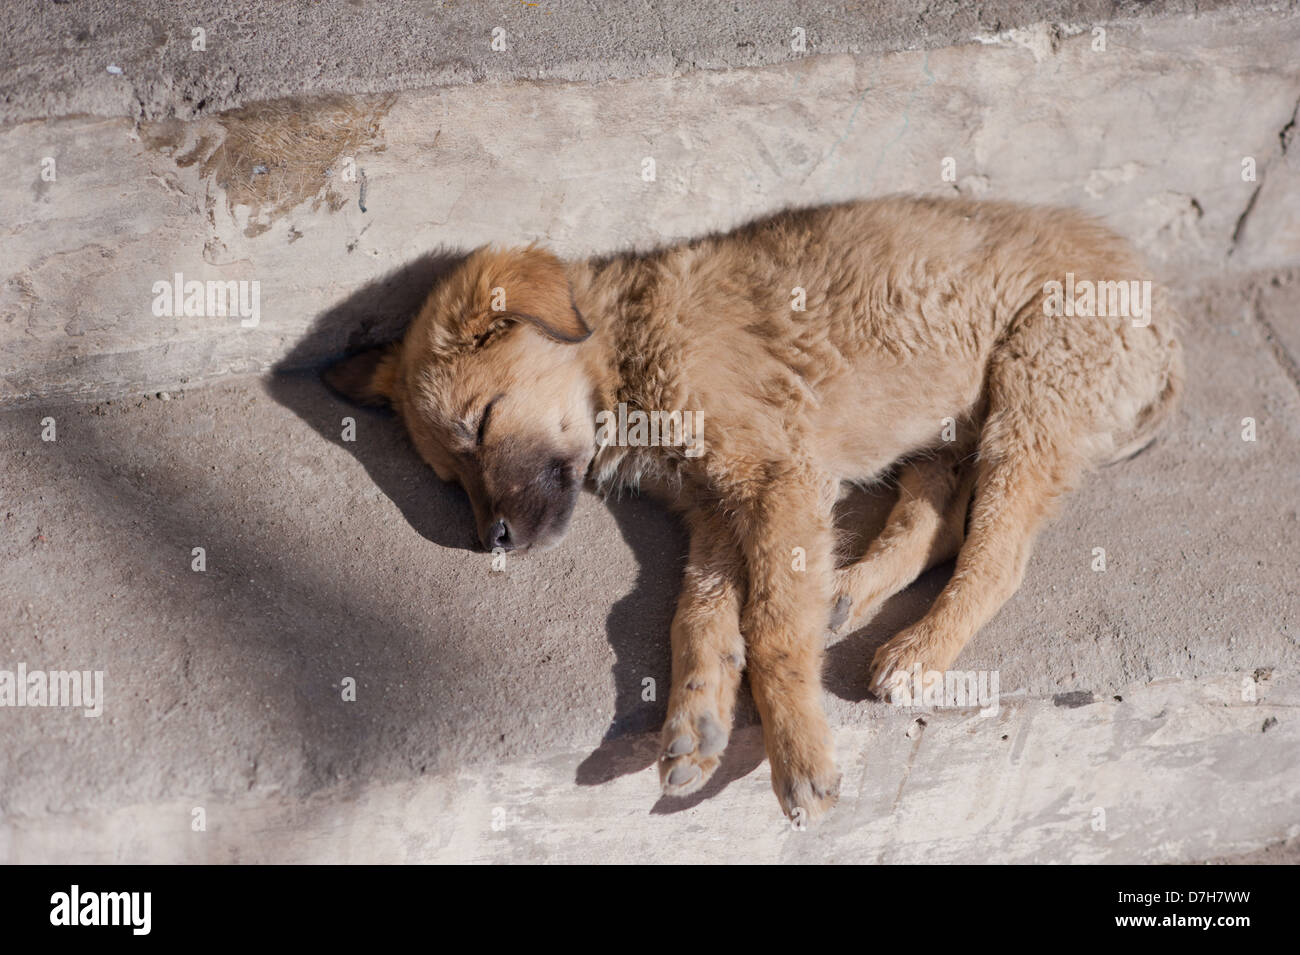 A small, stray puppy dog sleeps on the street in the sunshine. - Stock Image